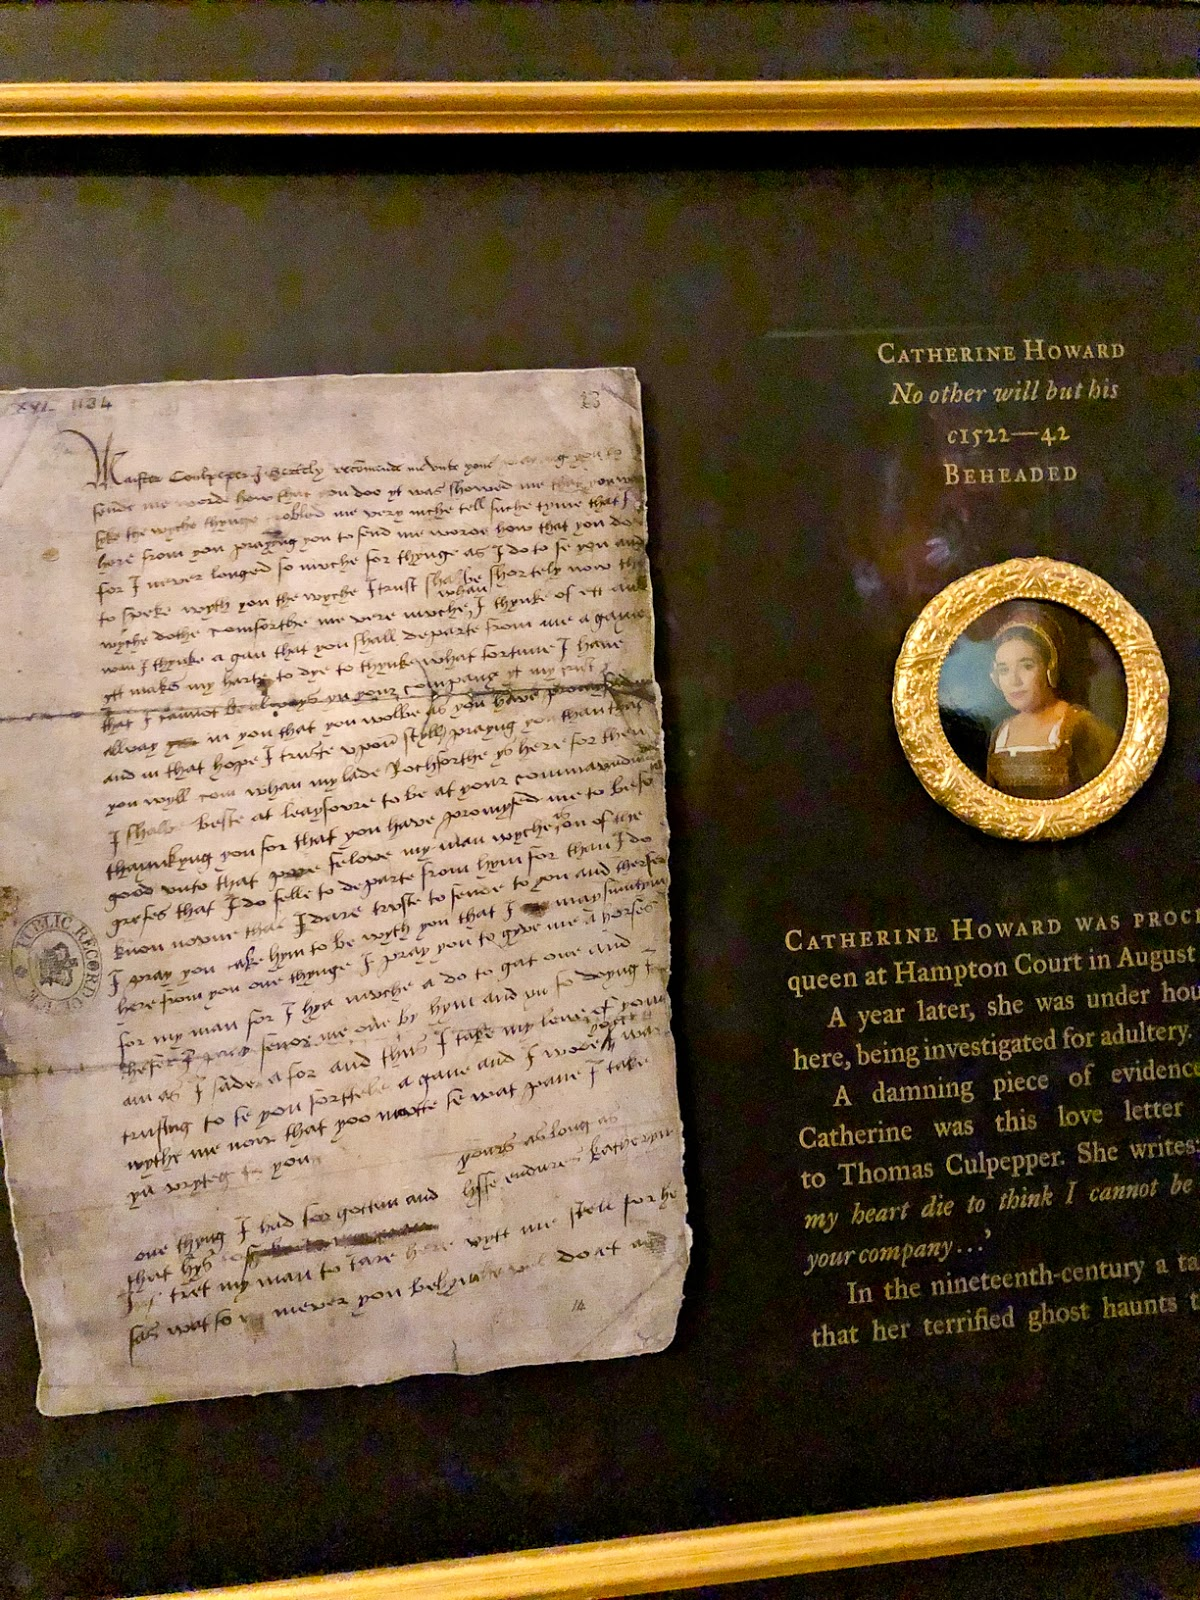 catherine howard love letter to thomas culpeper,  hampton court palace